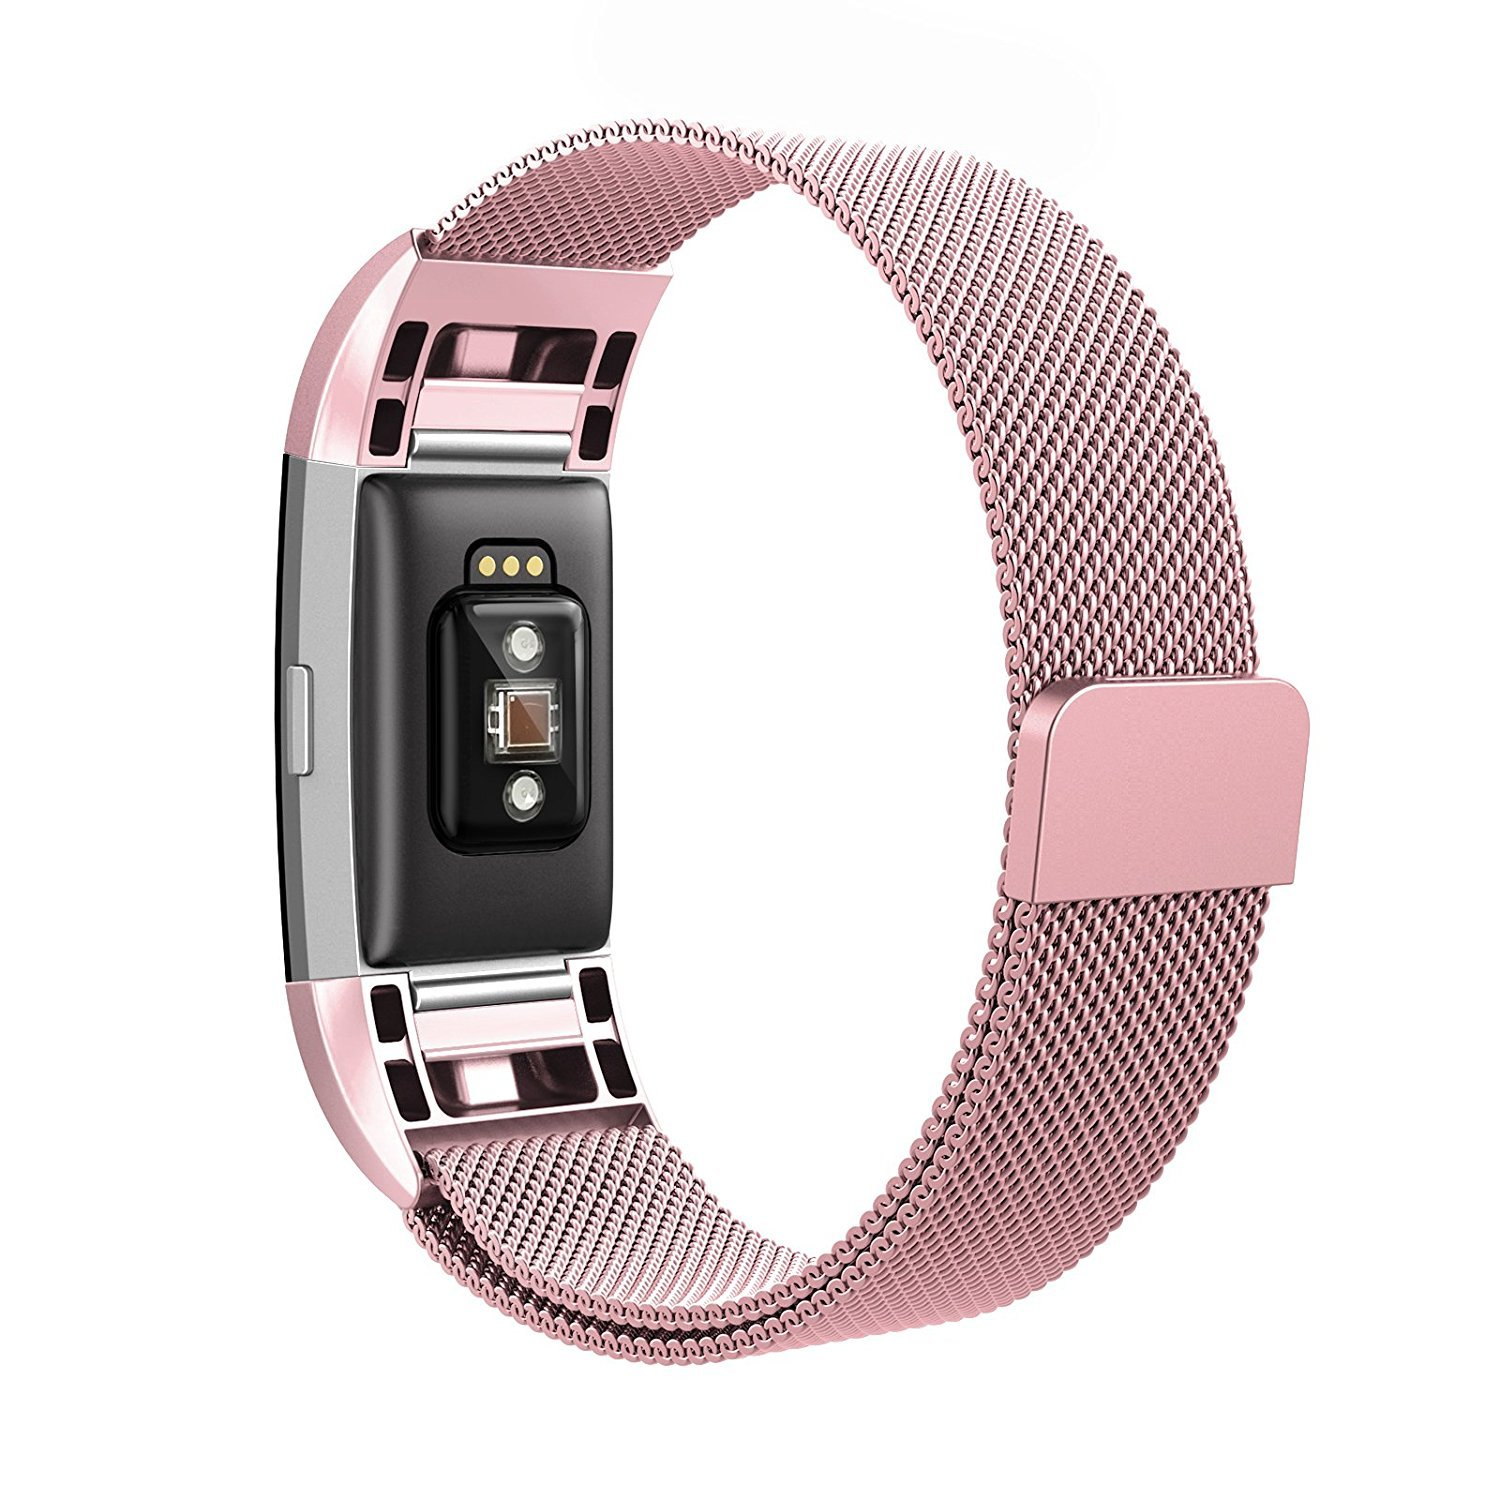 Colorful 5.5-9.9 Black TenYun Fitbit Charge 2 Bands Metal,Milanese Loop Stainless Steel Replacement Accessories Magnetic Metal Small /& Large Bands Gold Rose Gold Silver for Fitbit Charge 2